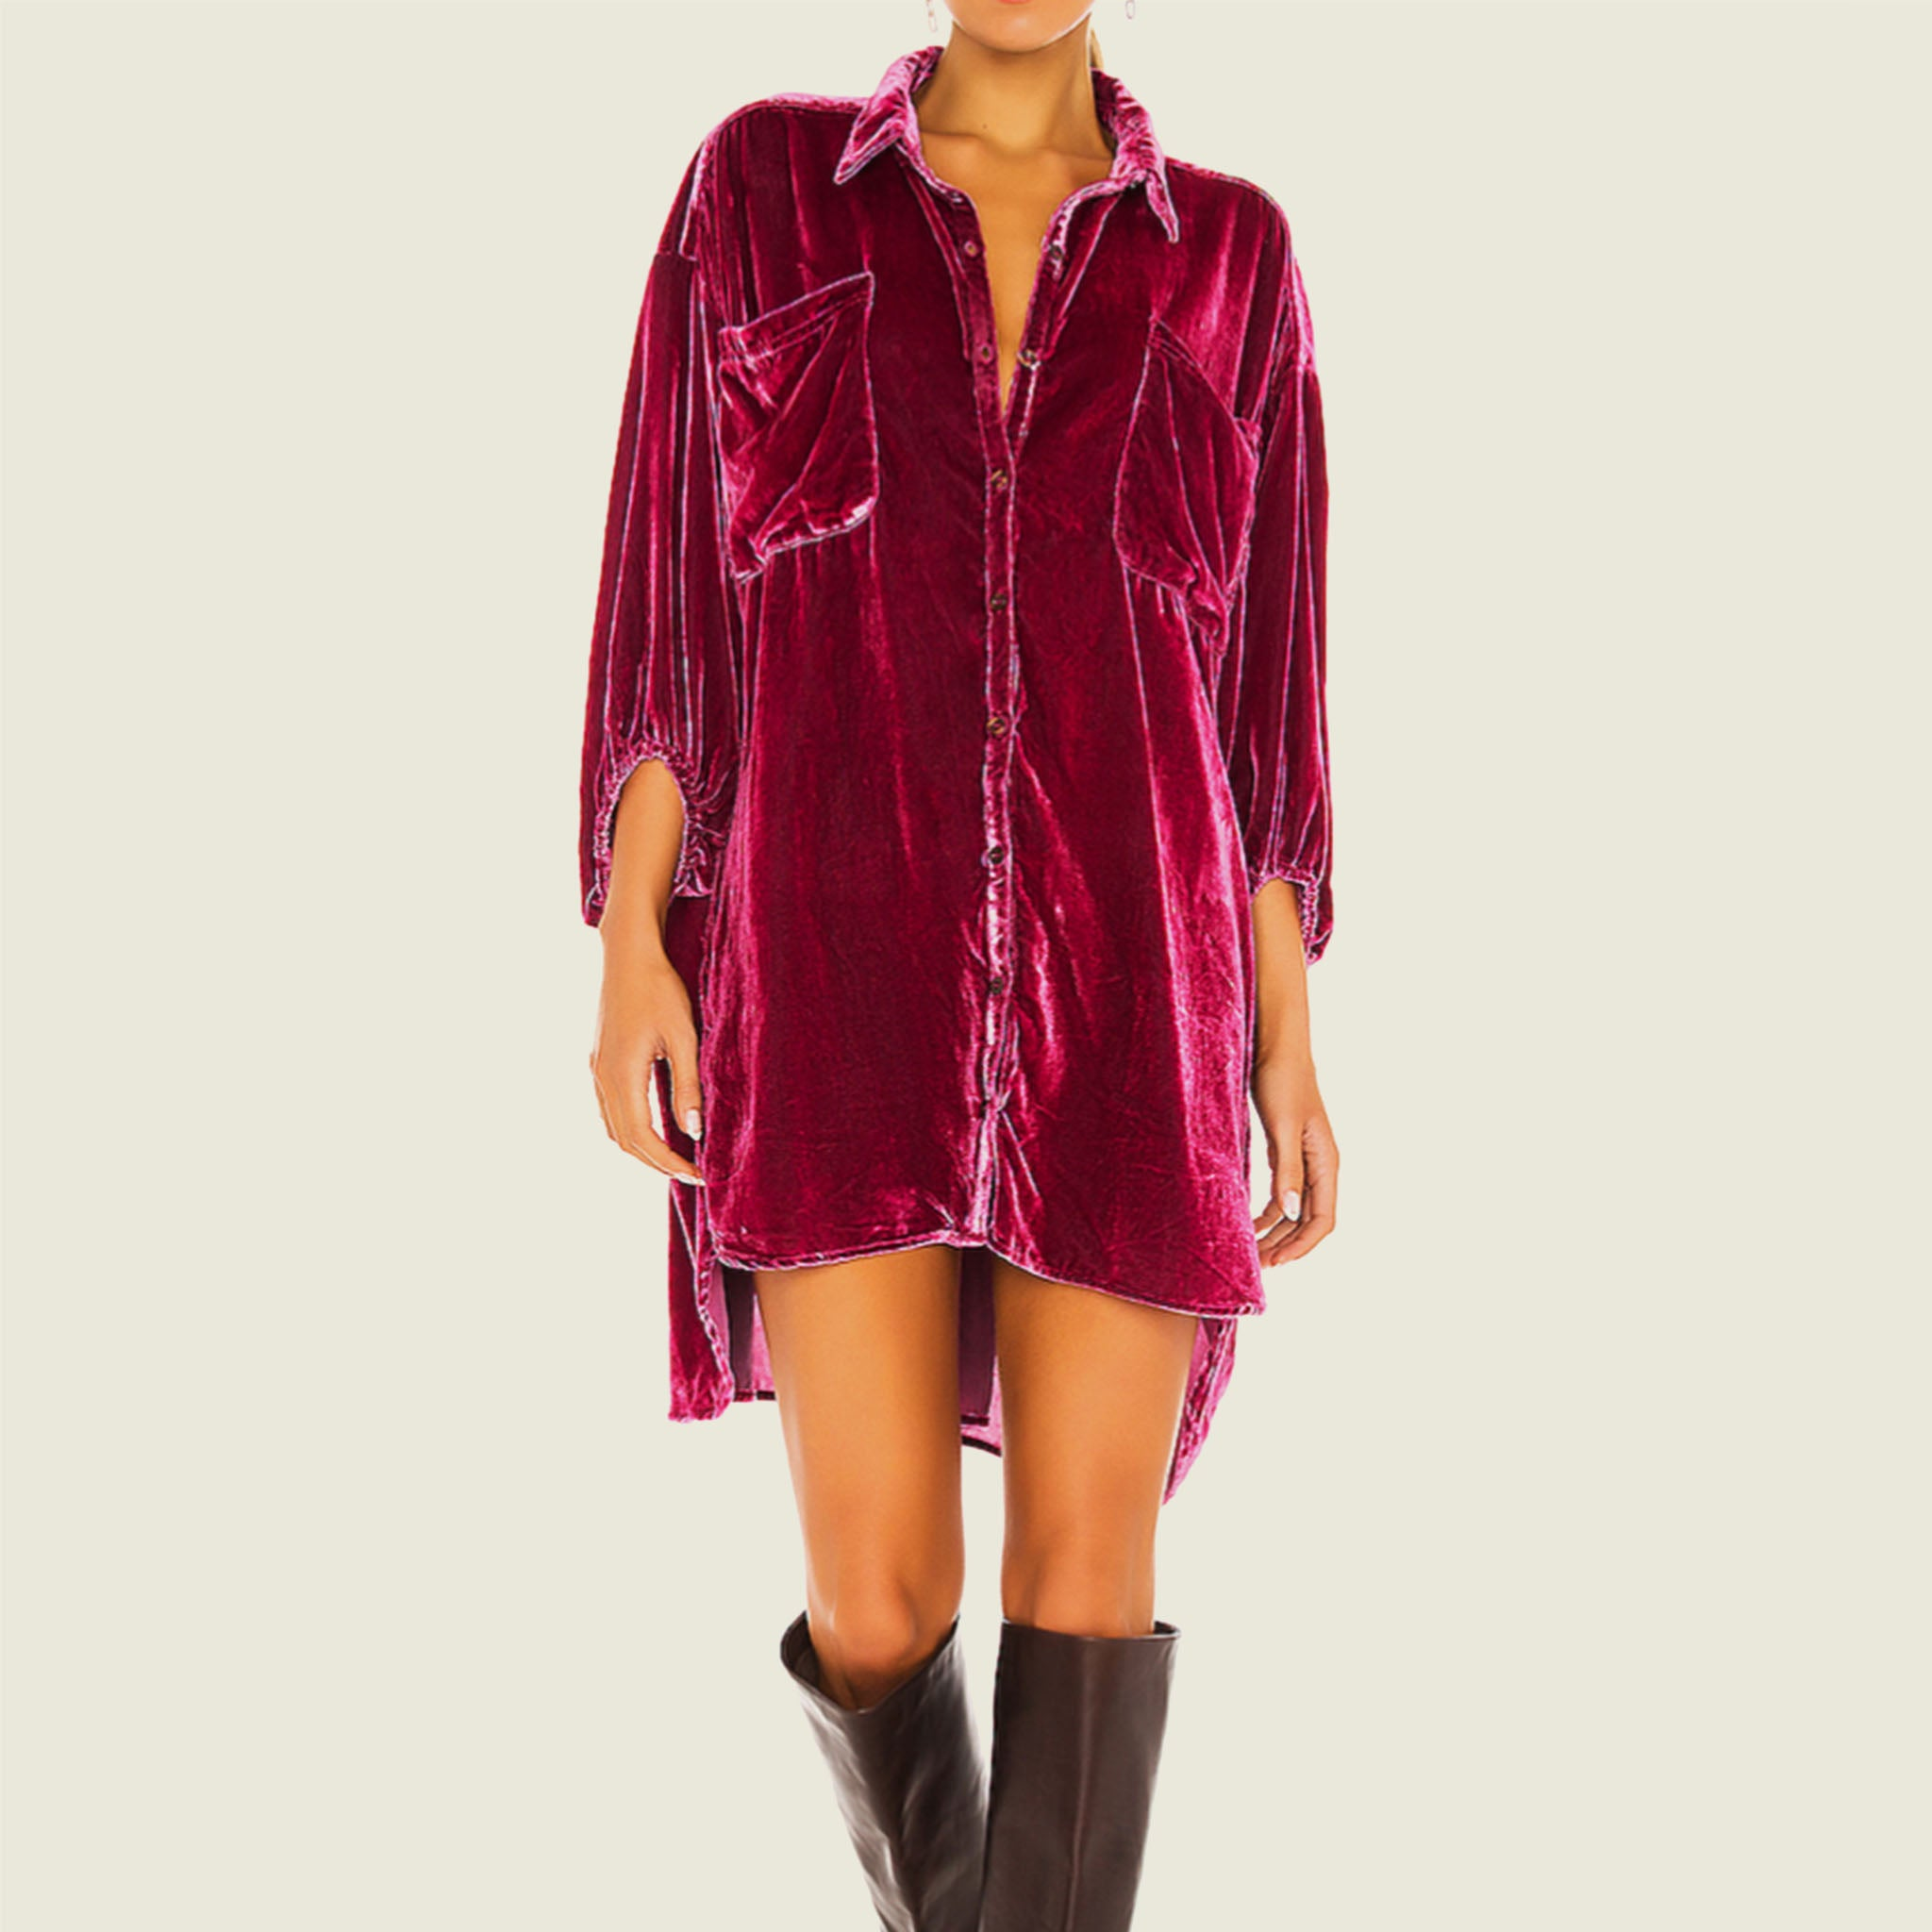 Luxe Velvet Shirtdress - Blackbird General Store